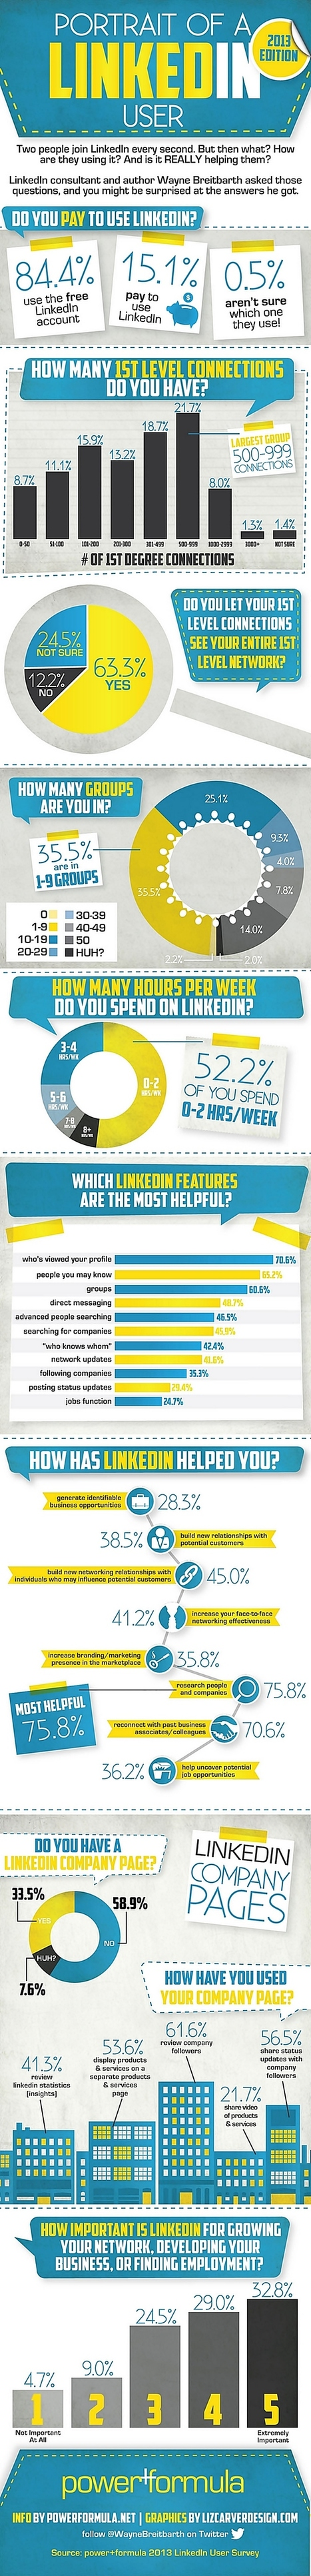 The Portrait of a LinkedIn User in 2013 | Infographic | Marketing, Social Media, E-commerce, Mobile, Videogames | Scoop.it